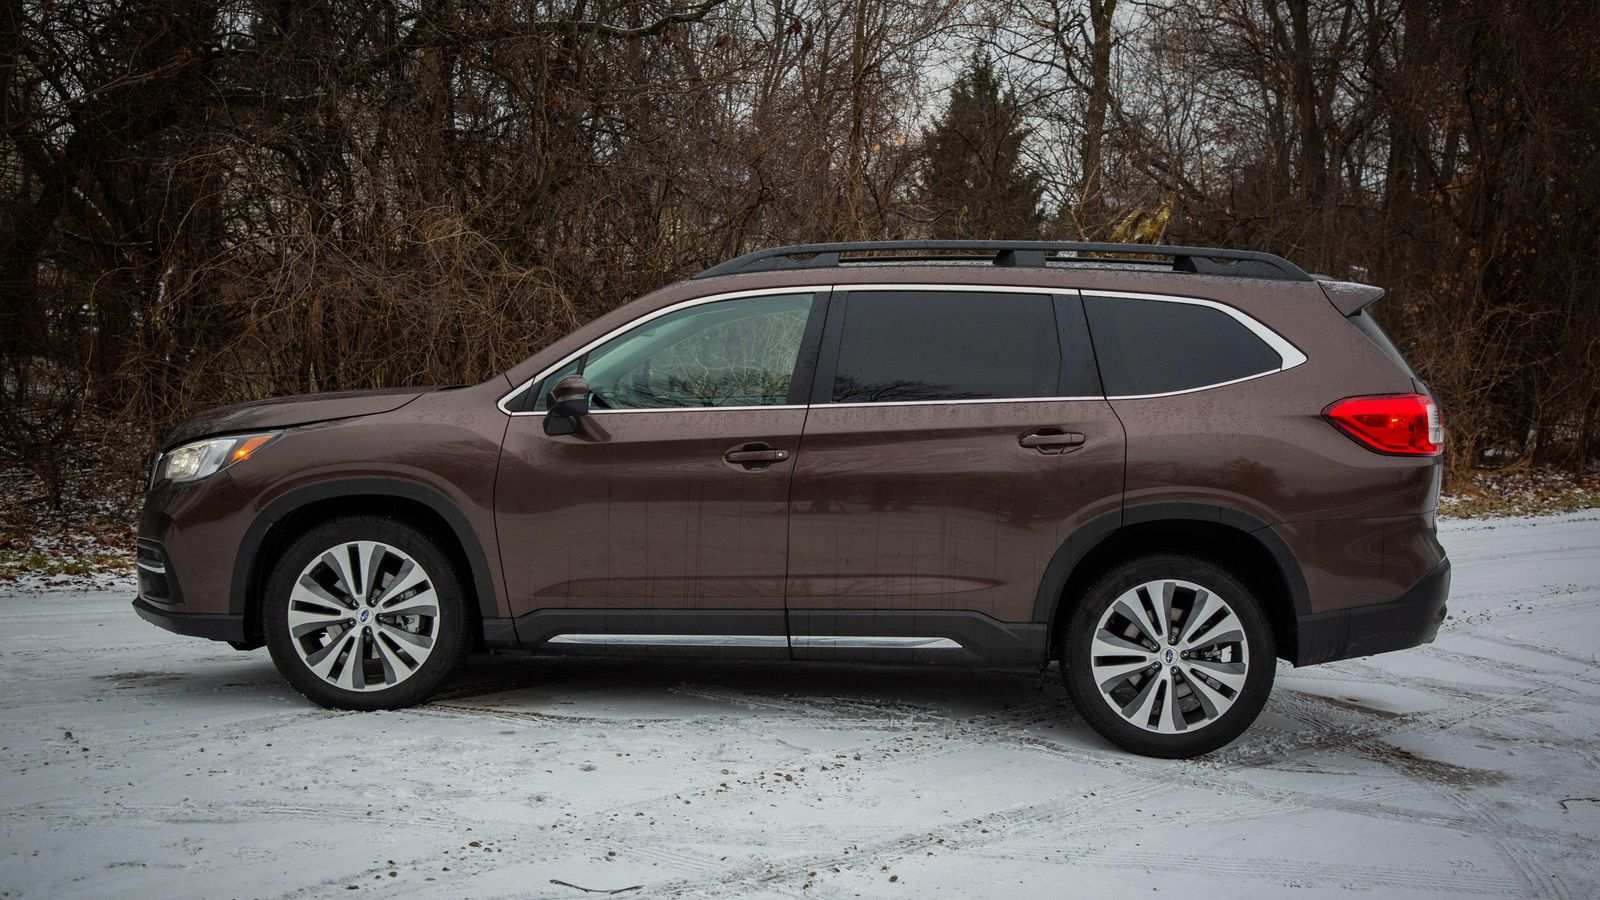 55 Gallery of Subaru Ascent 2020 Updates Redesign and Concept with Subaru Ascent 2020 Updates